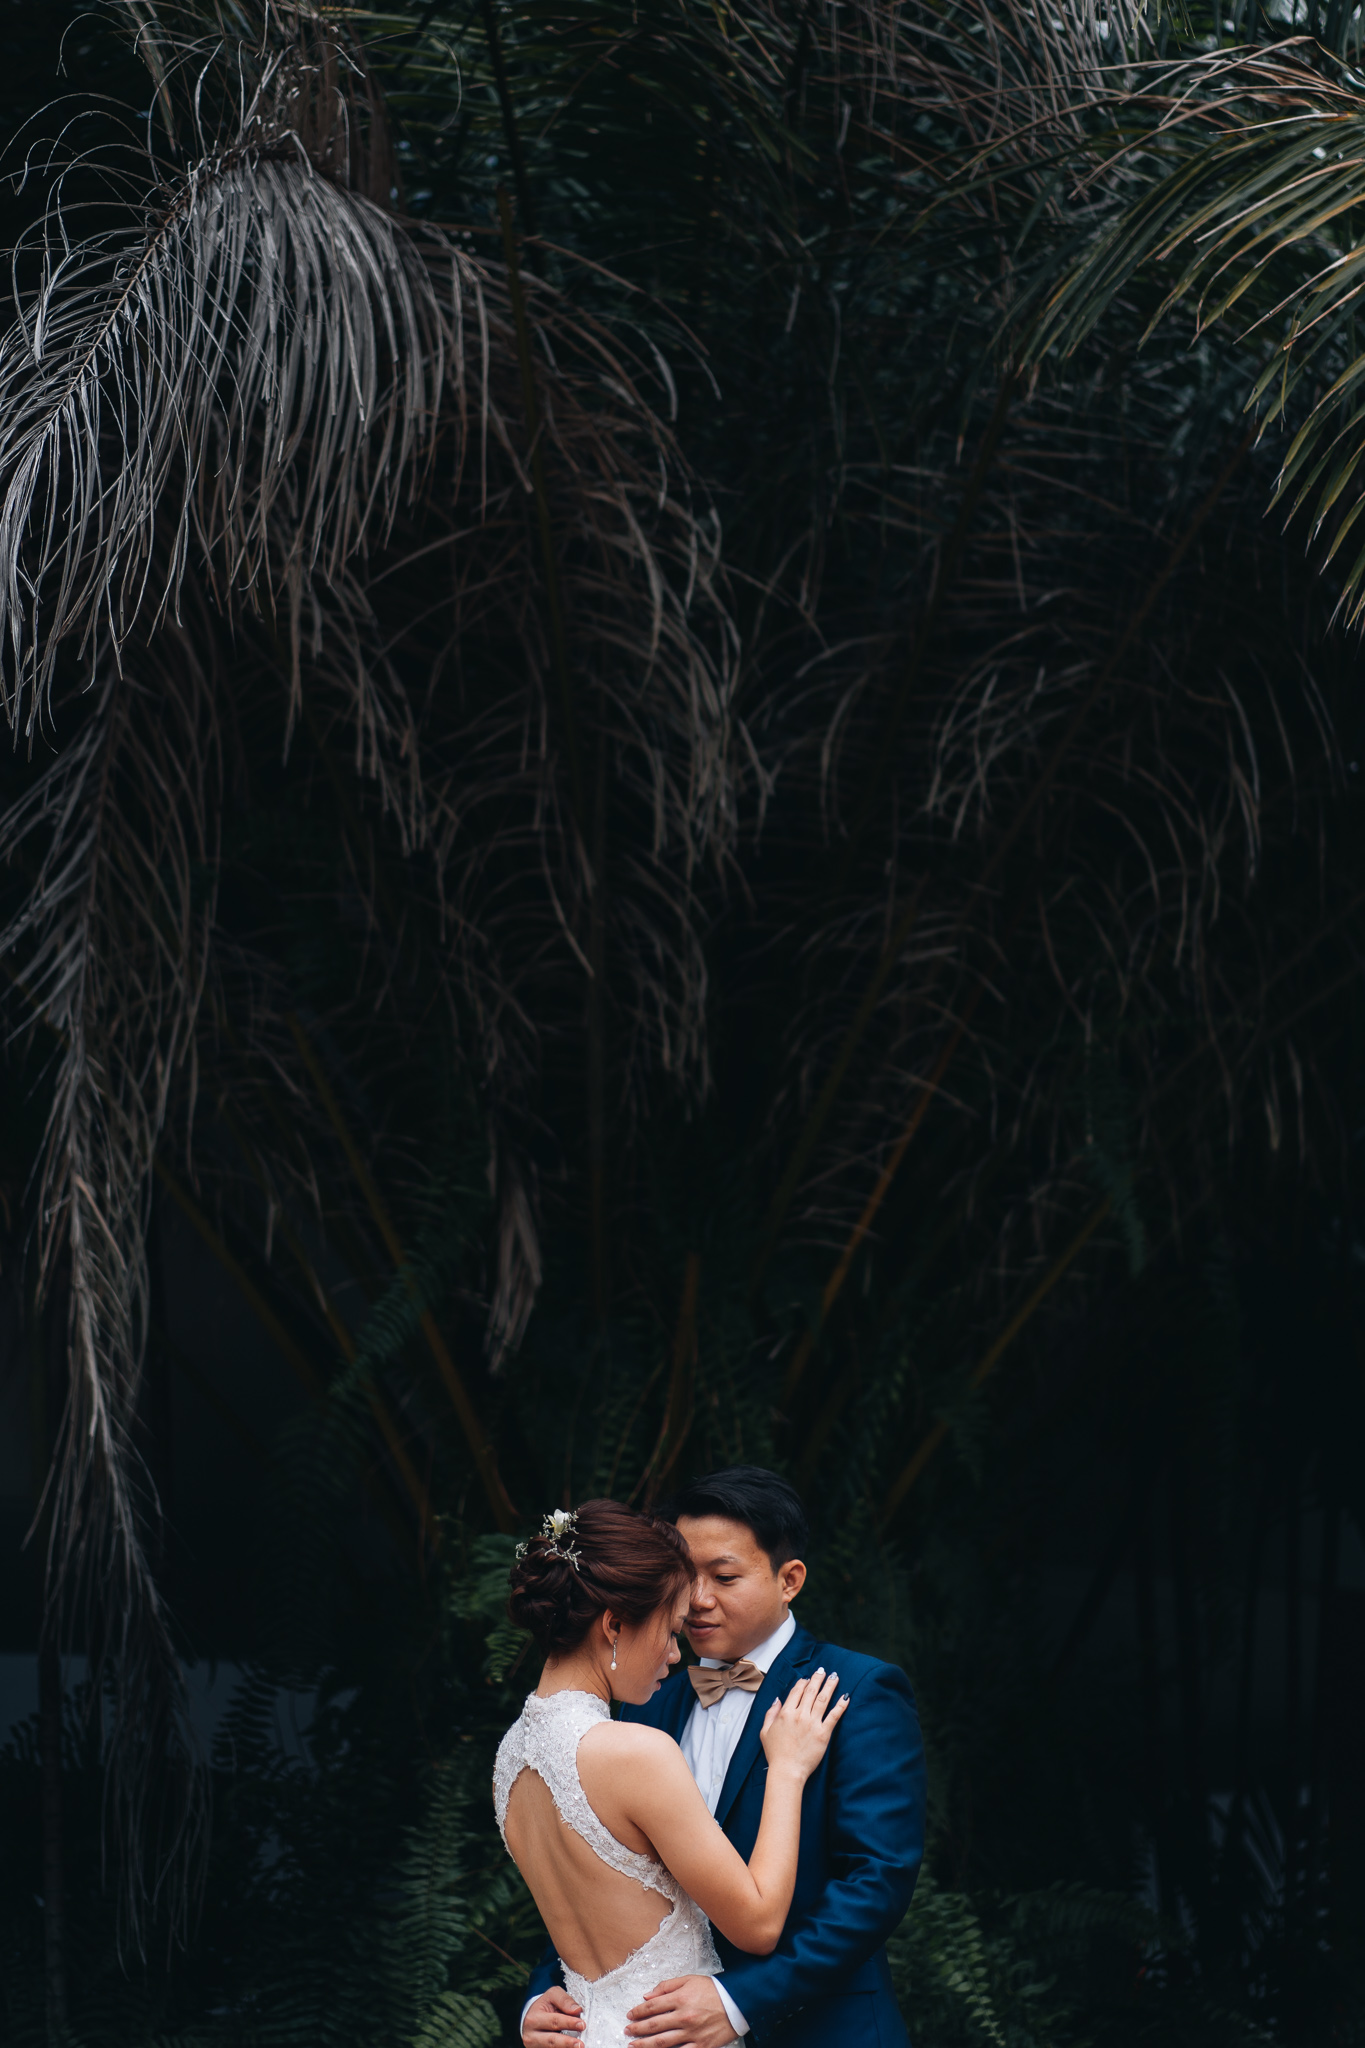 See Yuen & Keng Yeow Wedding Day Highlights (resized for sharing) - 078.jpg